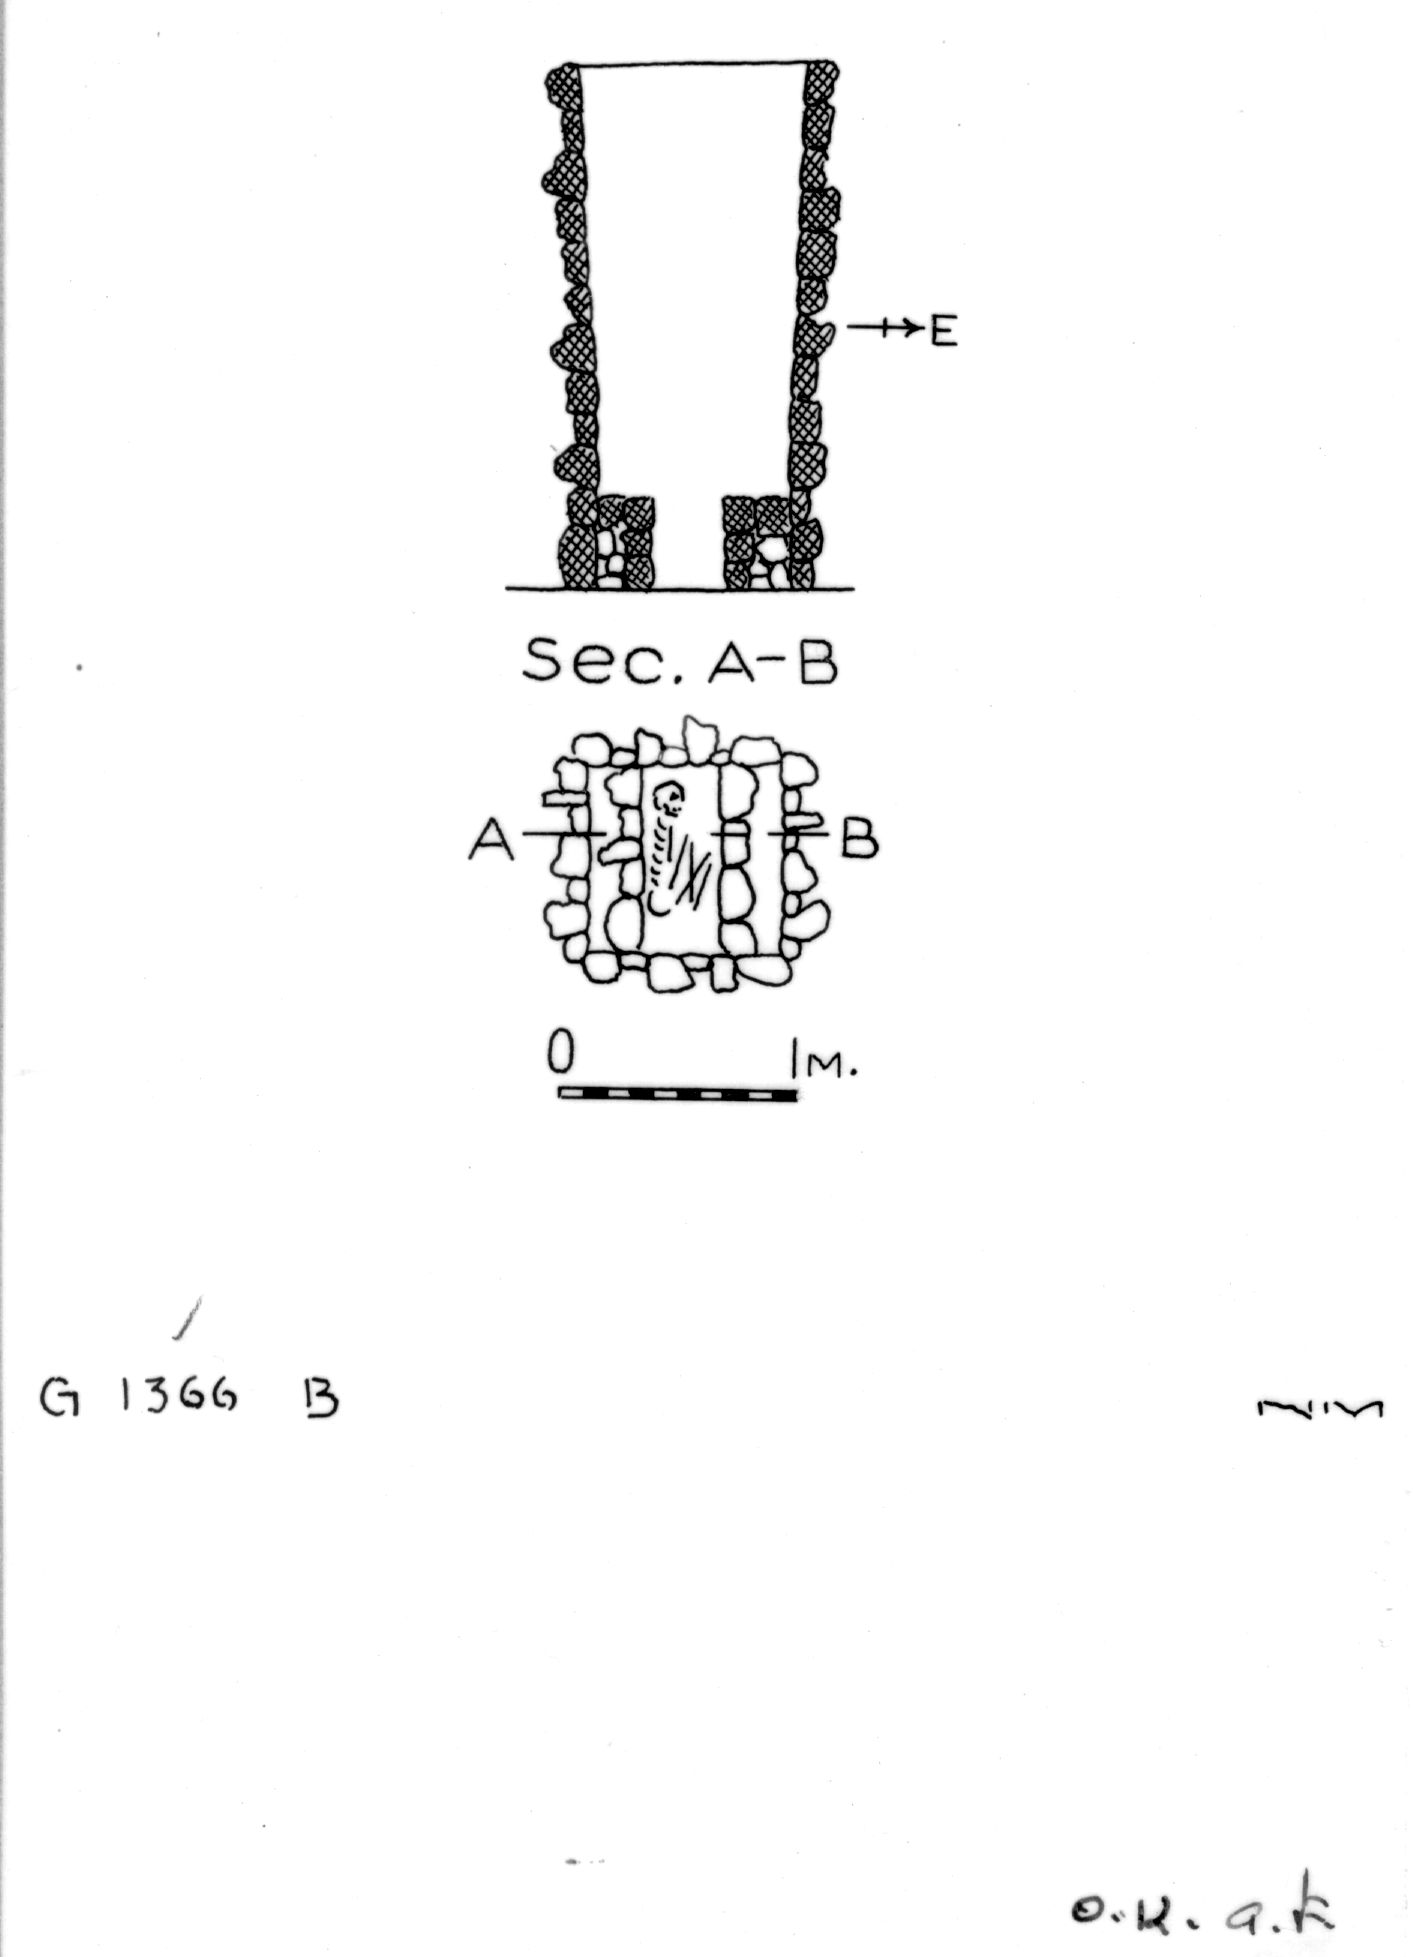 Maps and plans: G 1366, Shaft B